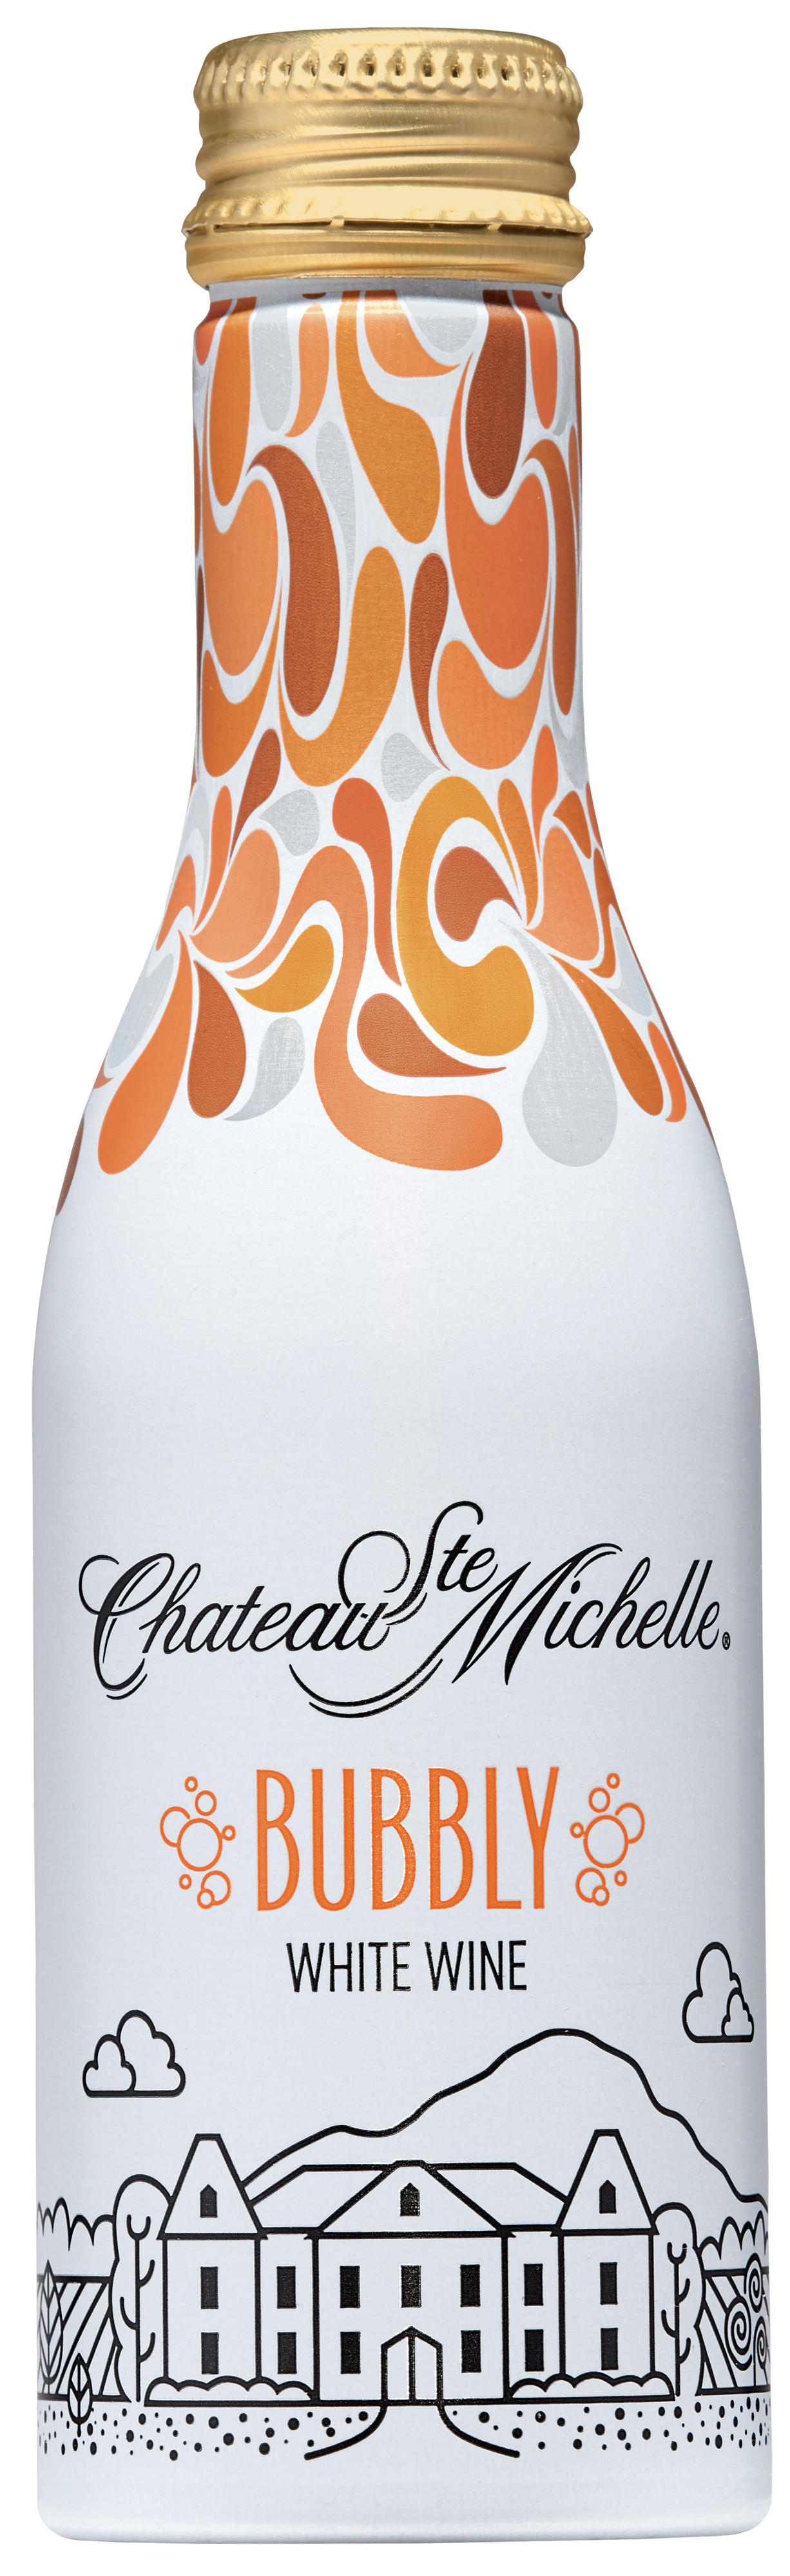 Chateau Ste. Michelle Aluminum Bottles - Bubbly (Image: Courtesy of{ }Chateau Ste. Michelle Winery)